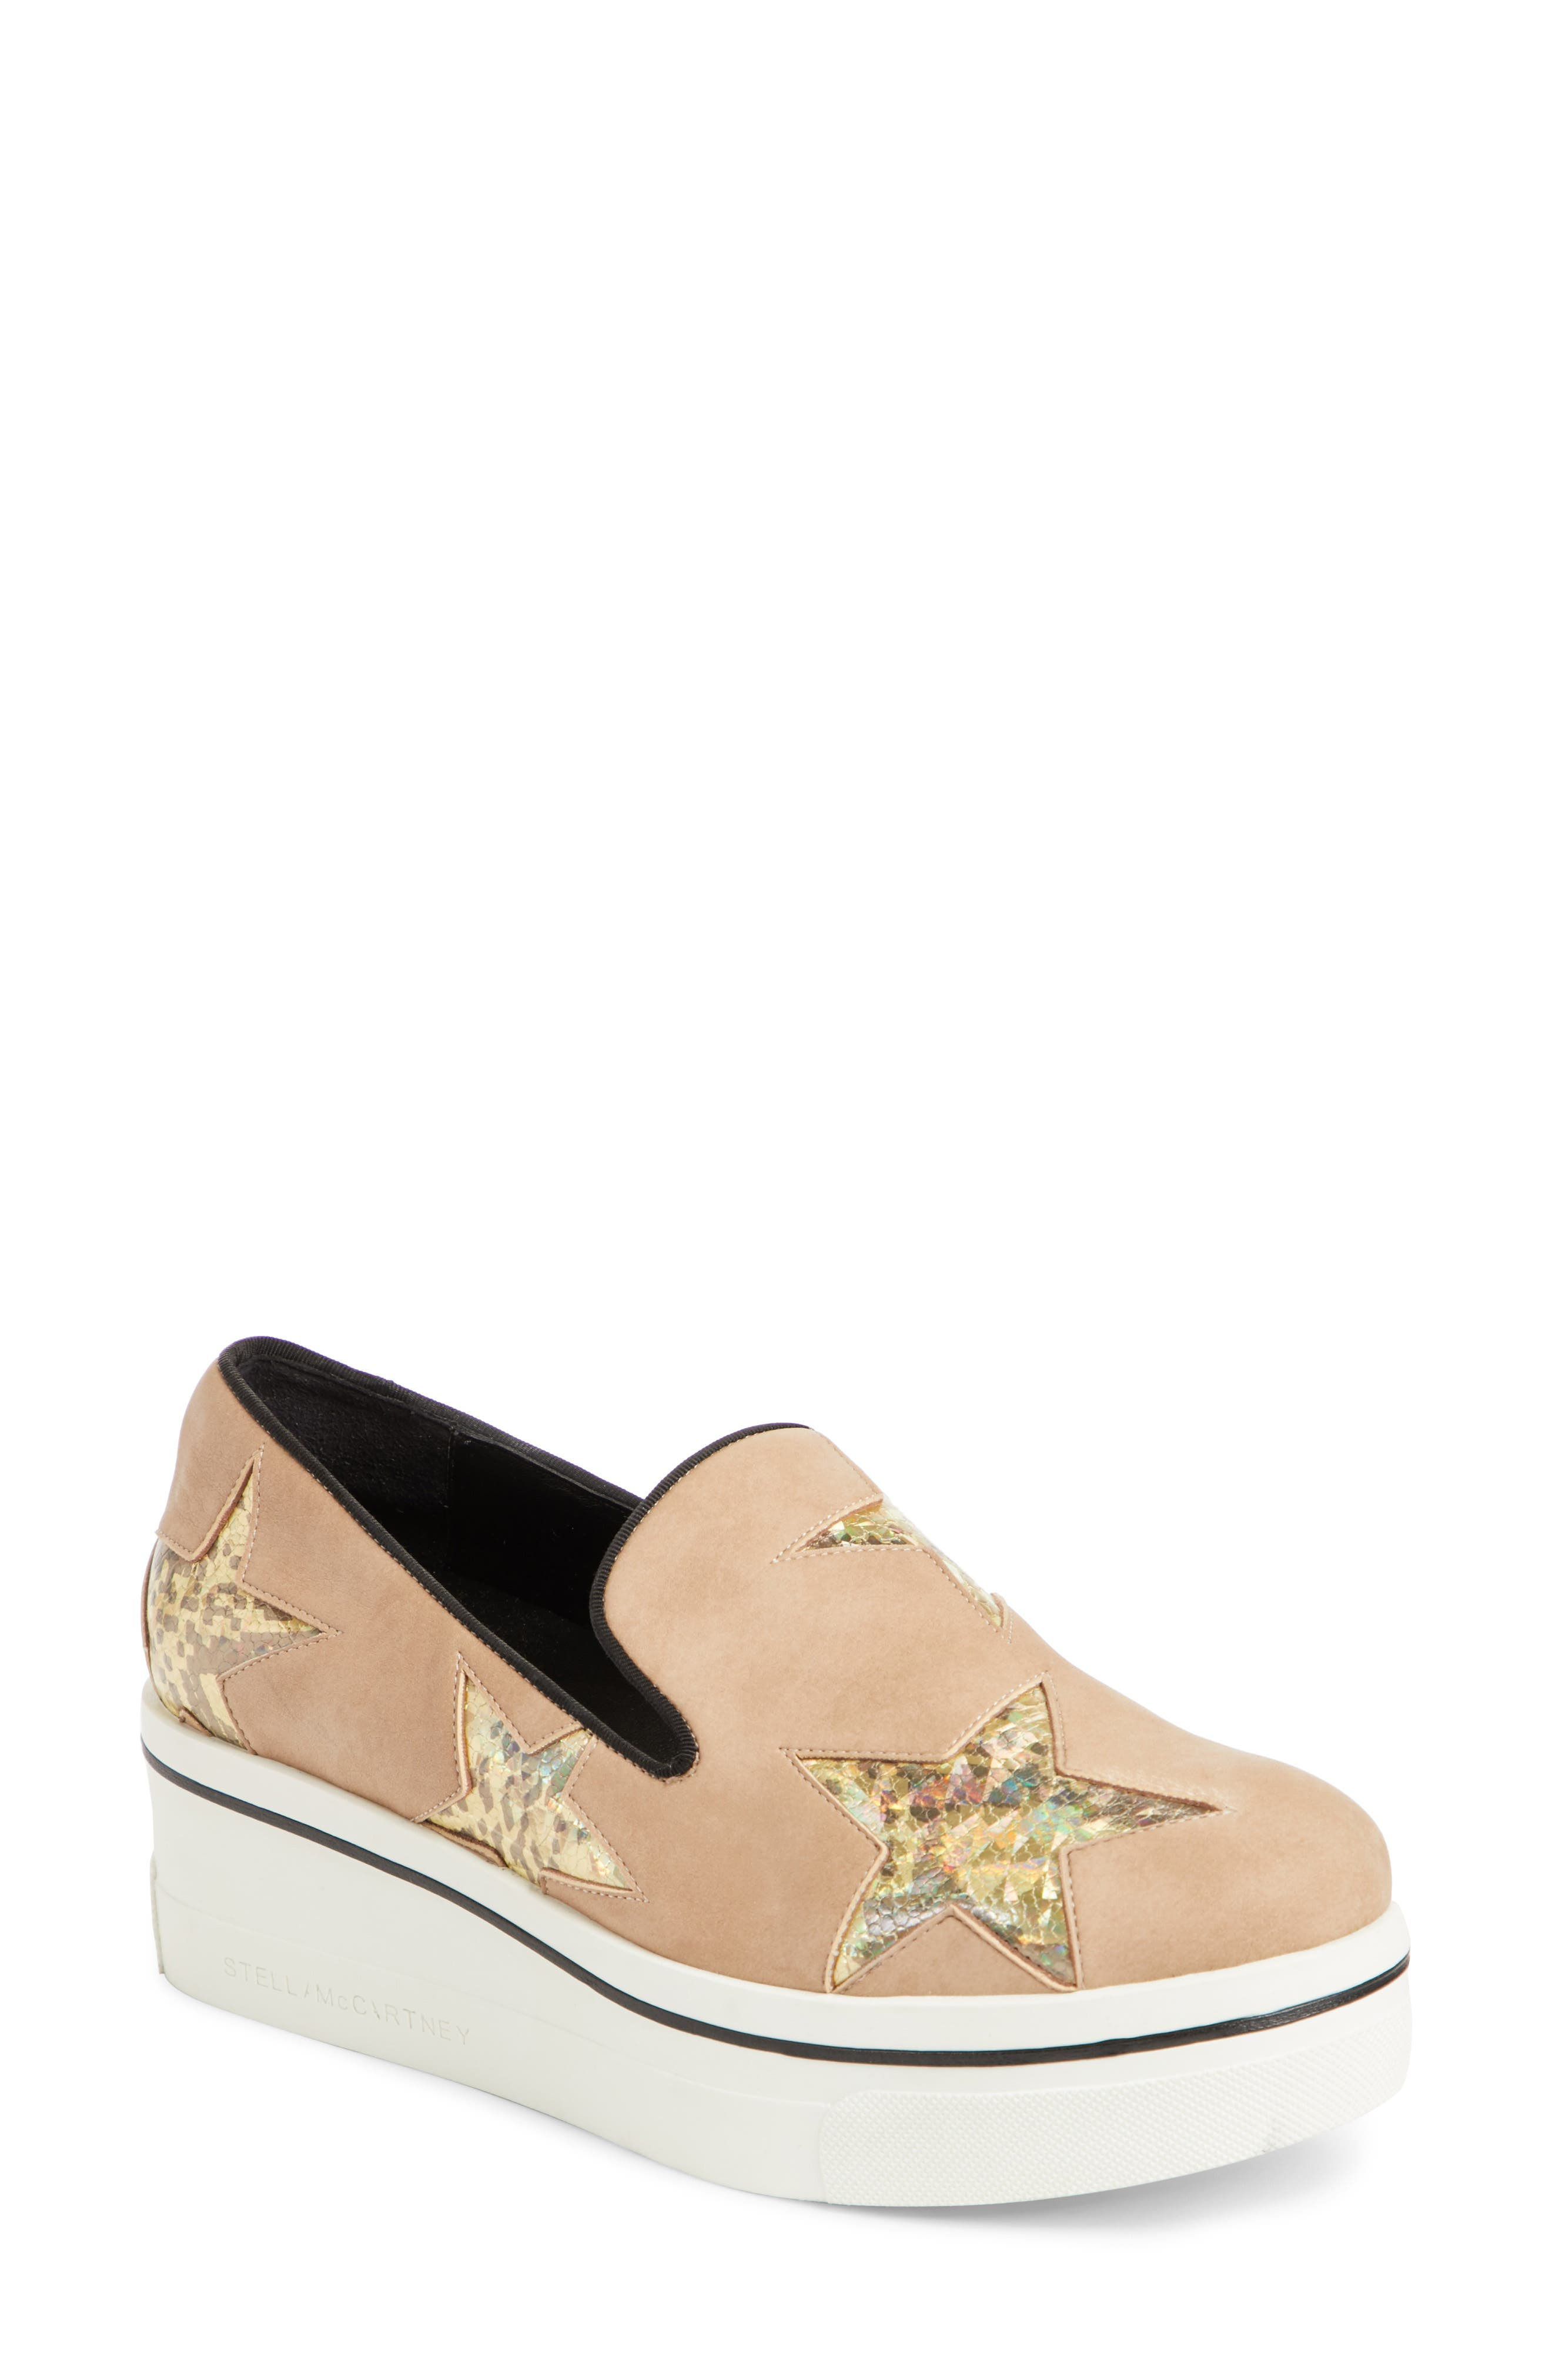 Binx Star Loafer,                             Main thumbnail 1, color,                             Pink/ Gold